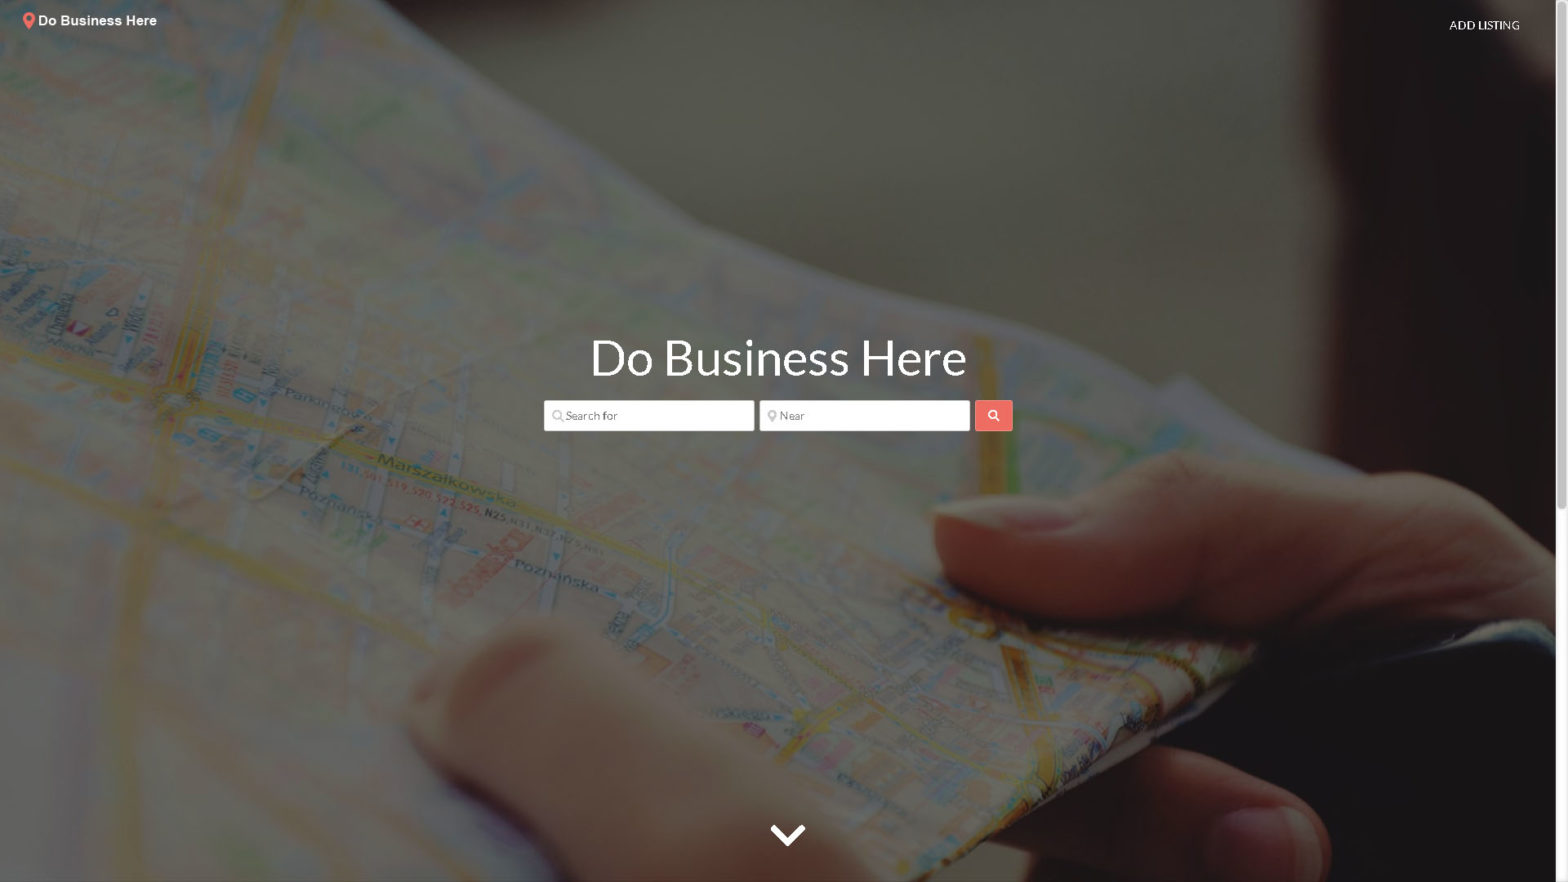 Do Business Here Home Page